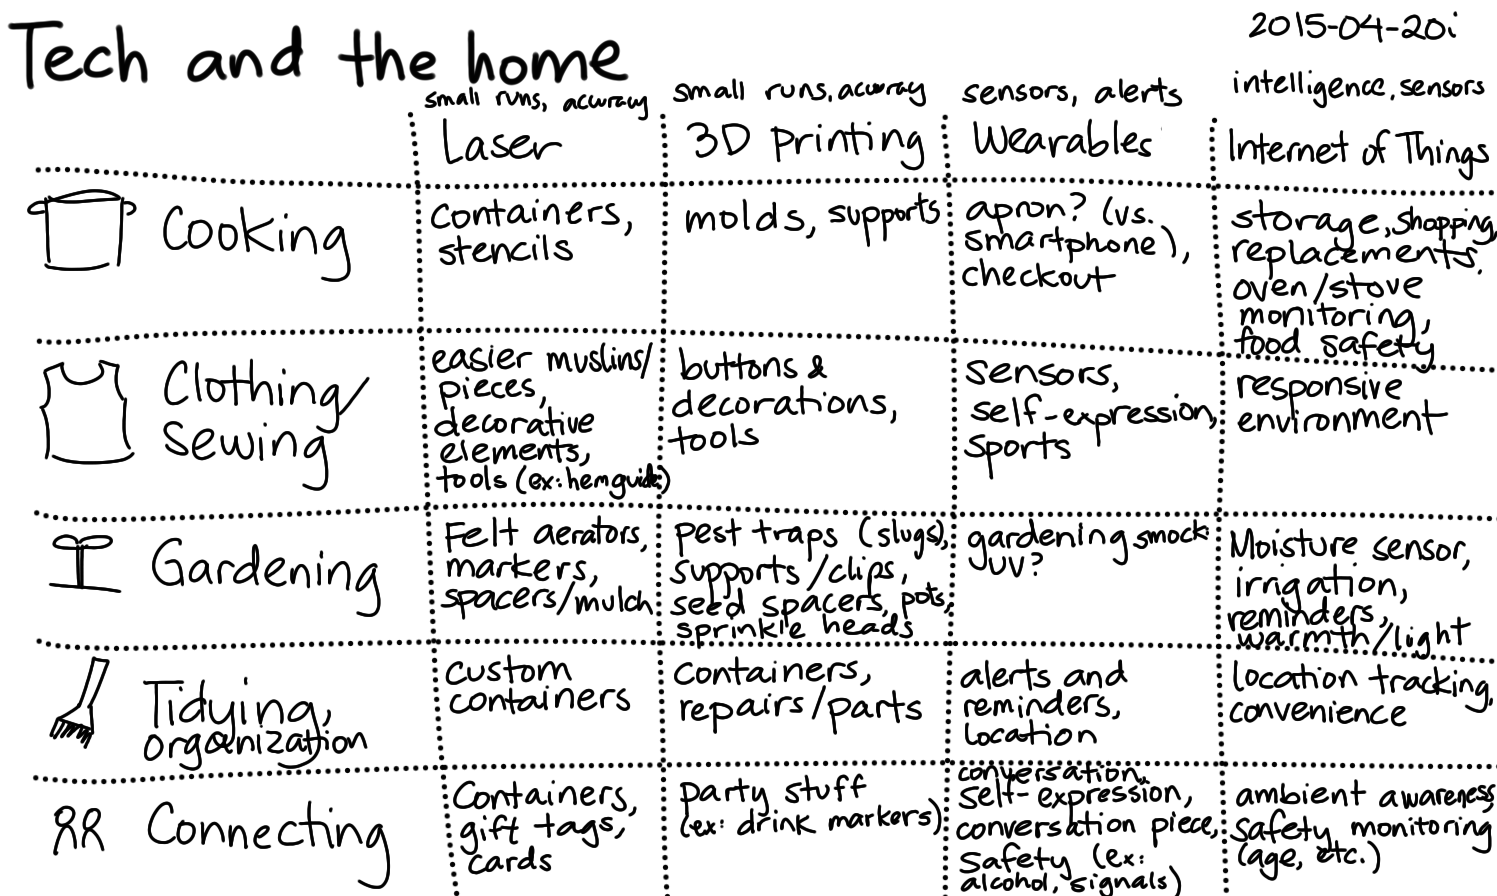 2015-04-20i Tech and the home -- index card #tech-and-home.png